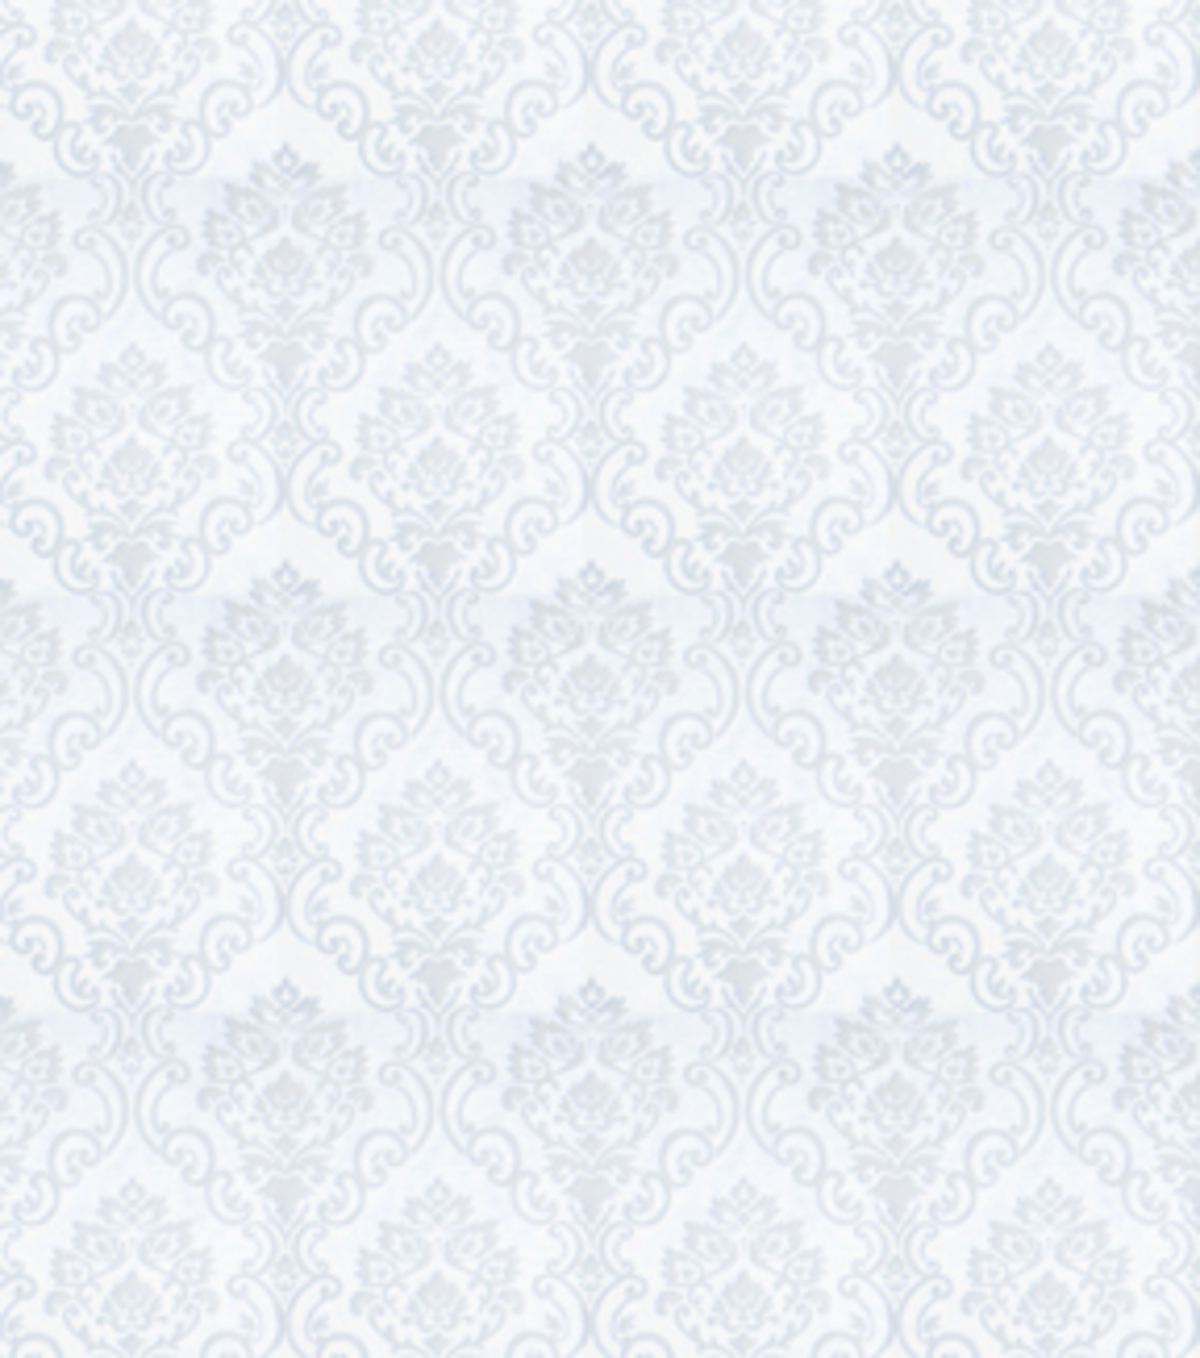 Home Decor 8\u0022x8\u0022 Fabric Swatch-Eaton Square Channel   Pearl